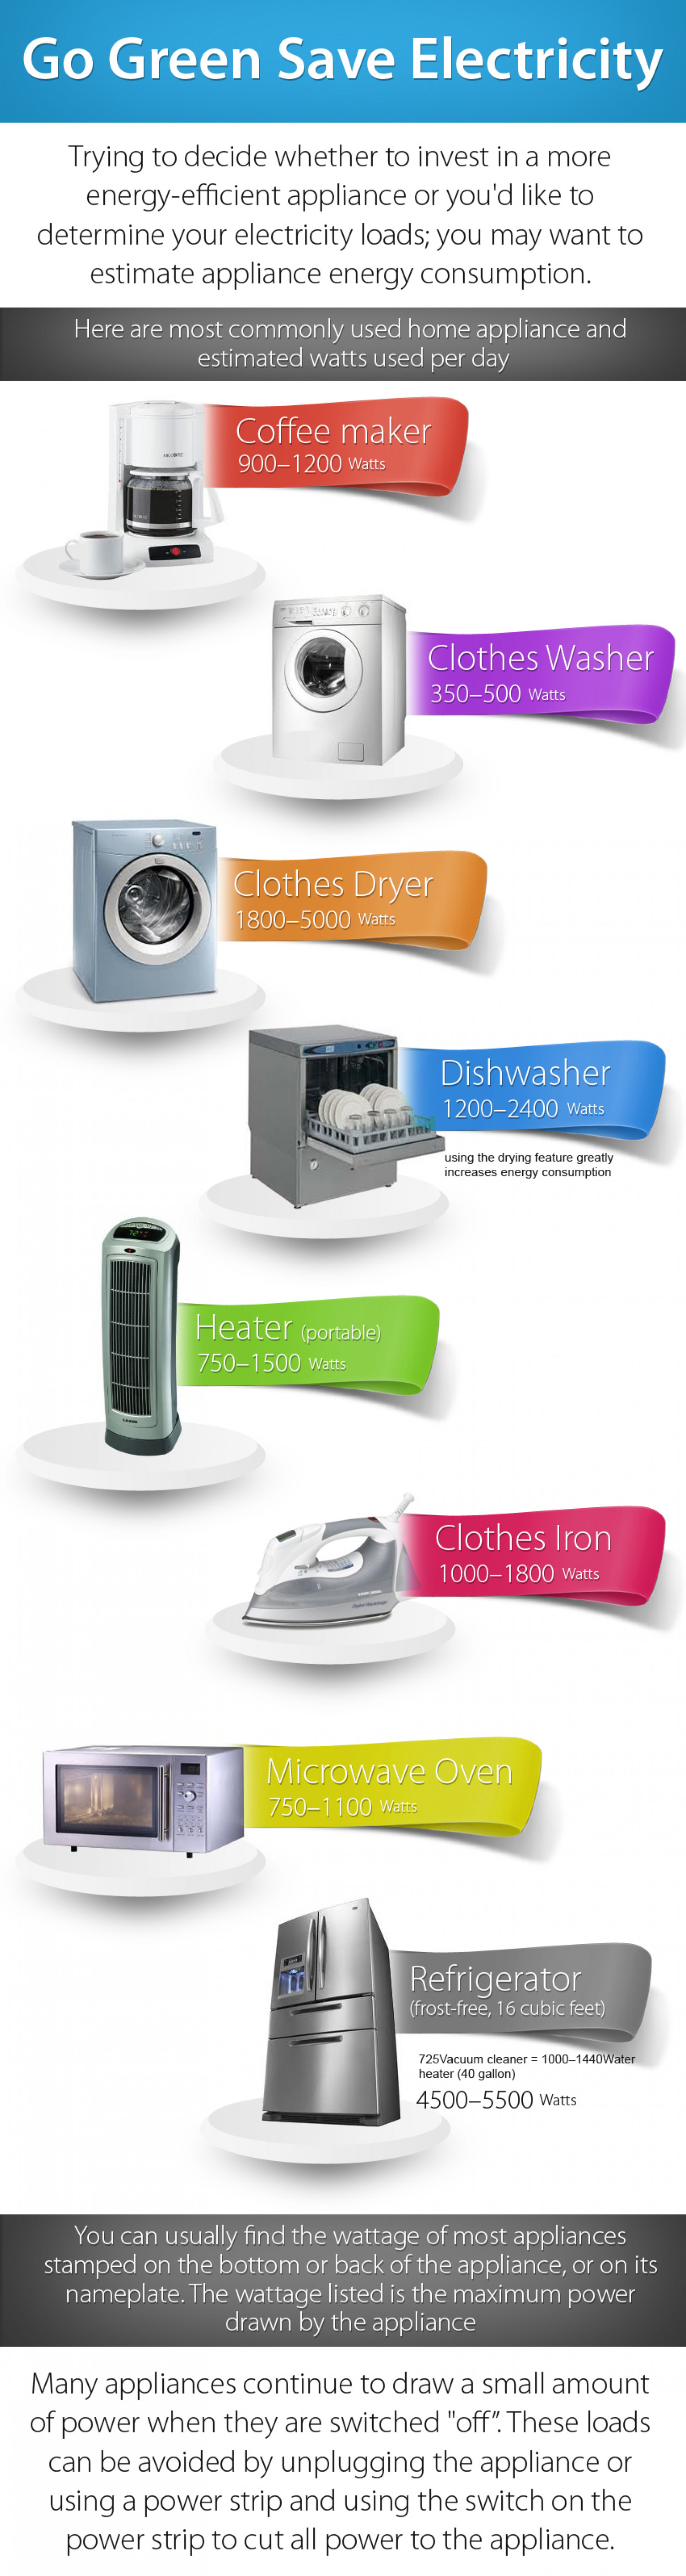 Save Energy through Smart Use of Appliance Infographic